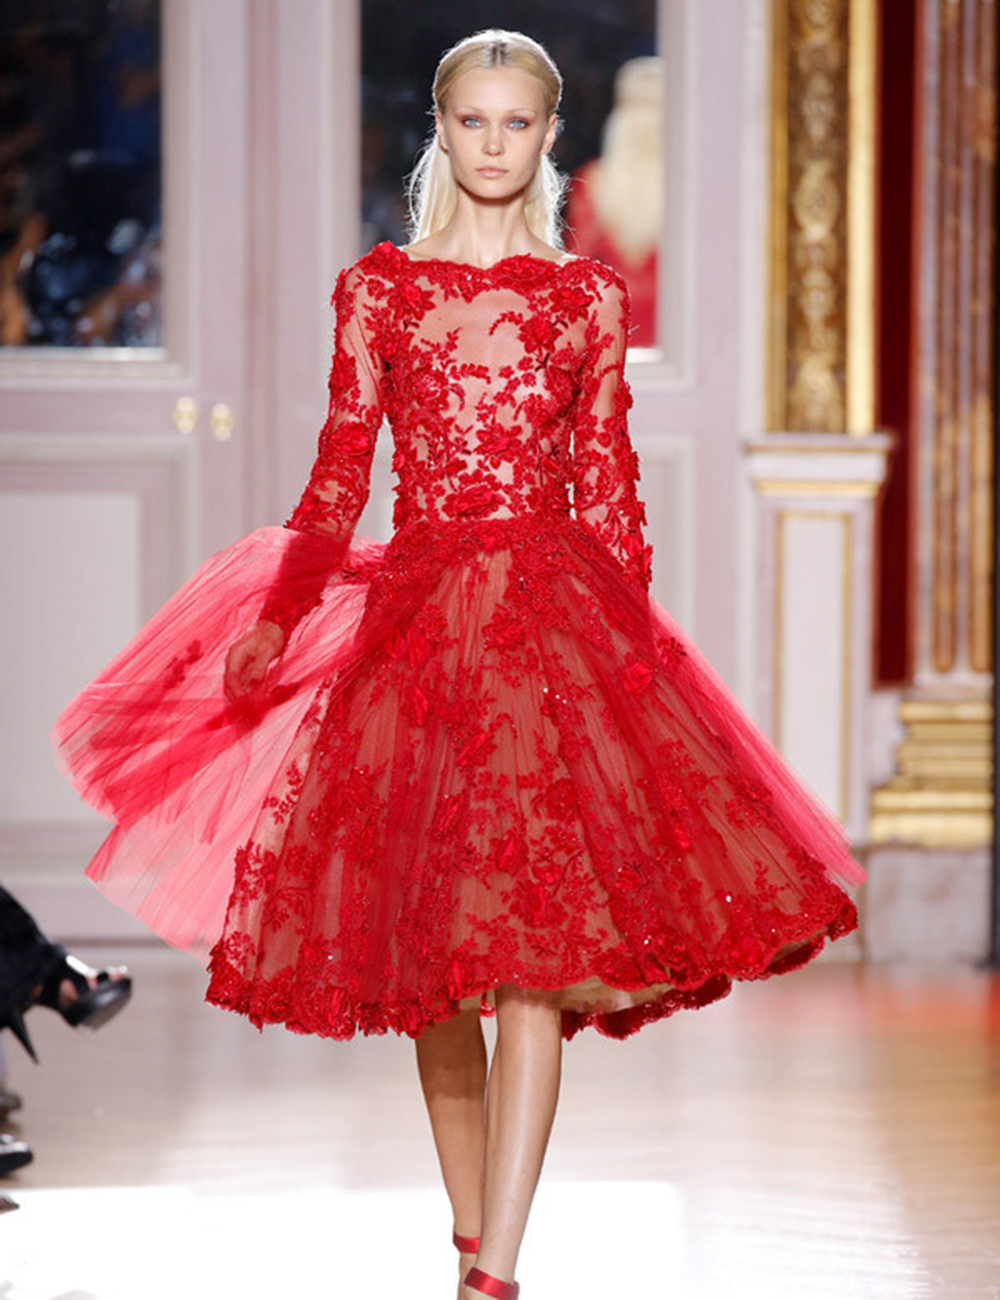 Popular Zuhair Murad Dresses for Sale-Buy Cheap Zuhair Murad ...